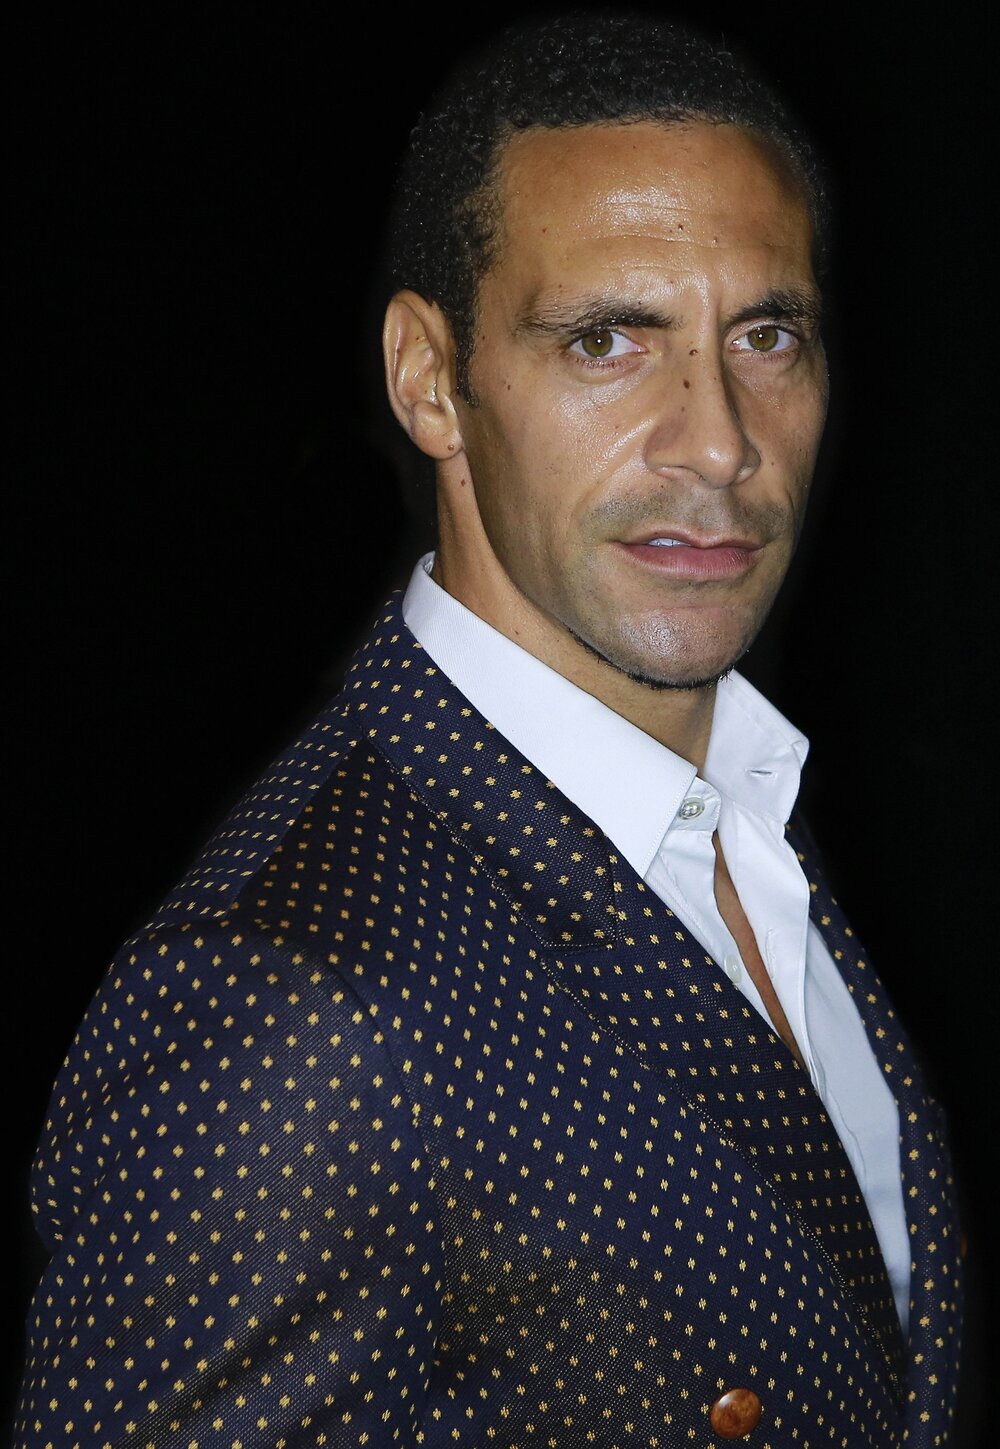 Rio ferdinand, former England and Manchester United captain, and phone hacking victim (Image by Walterlan Papetti, CC 3.0)